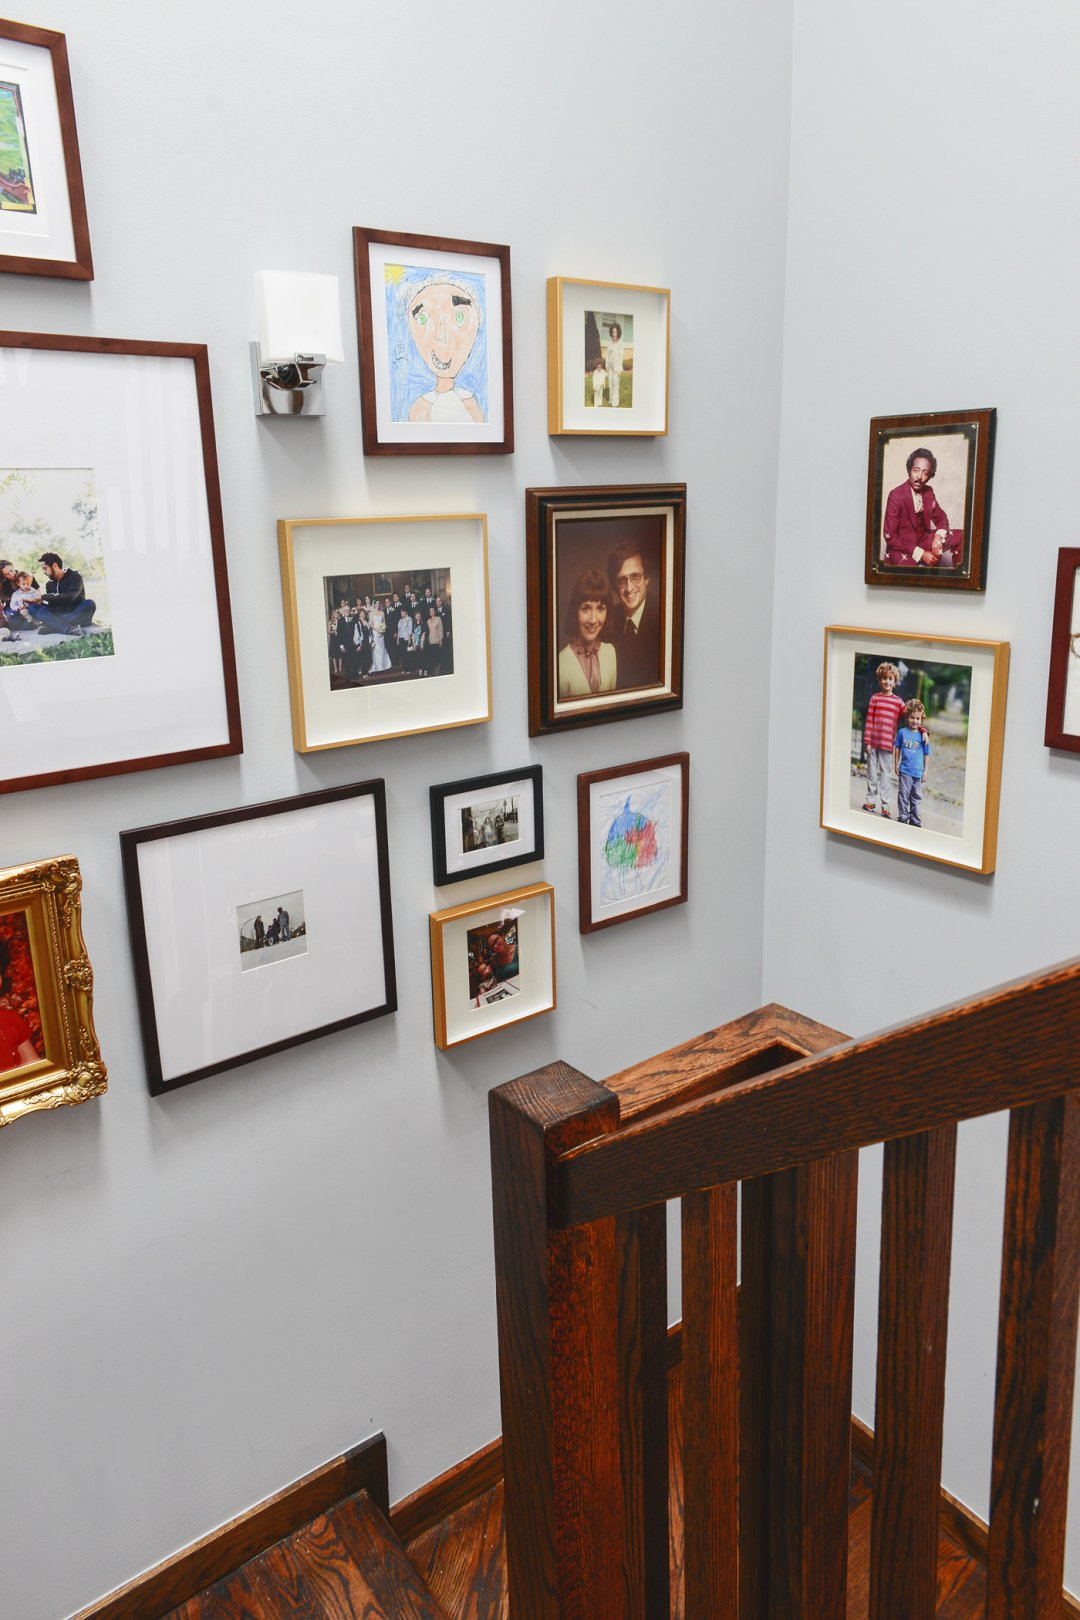 Photos displayed on photo wall